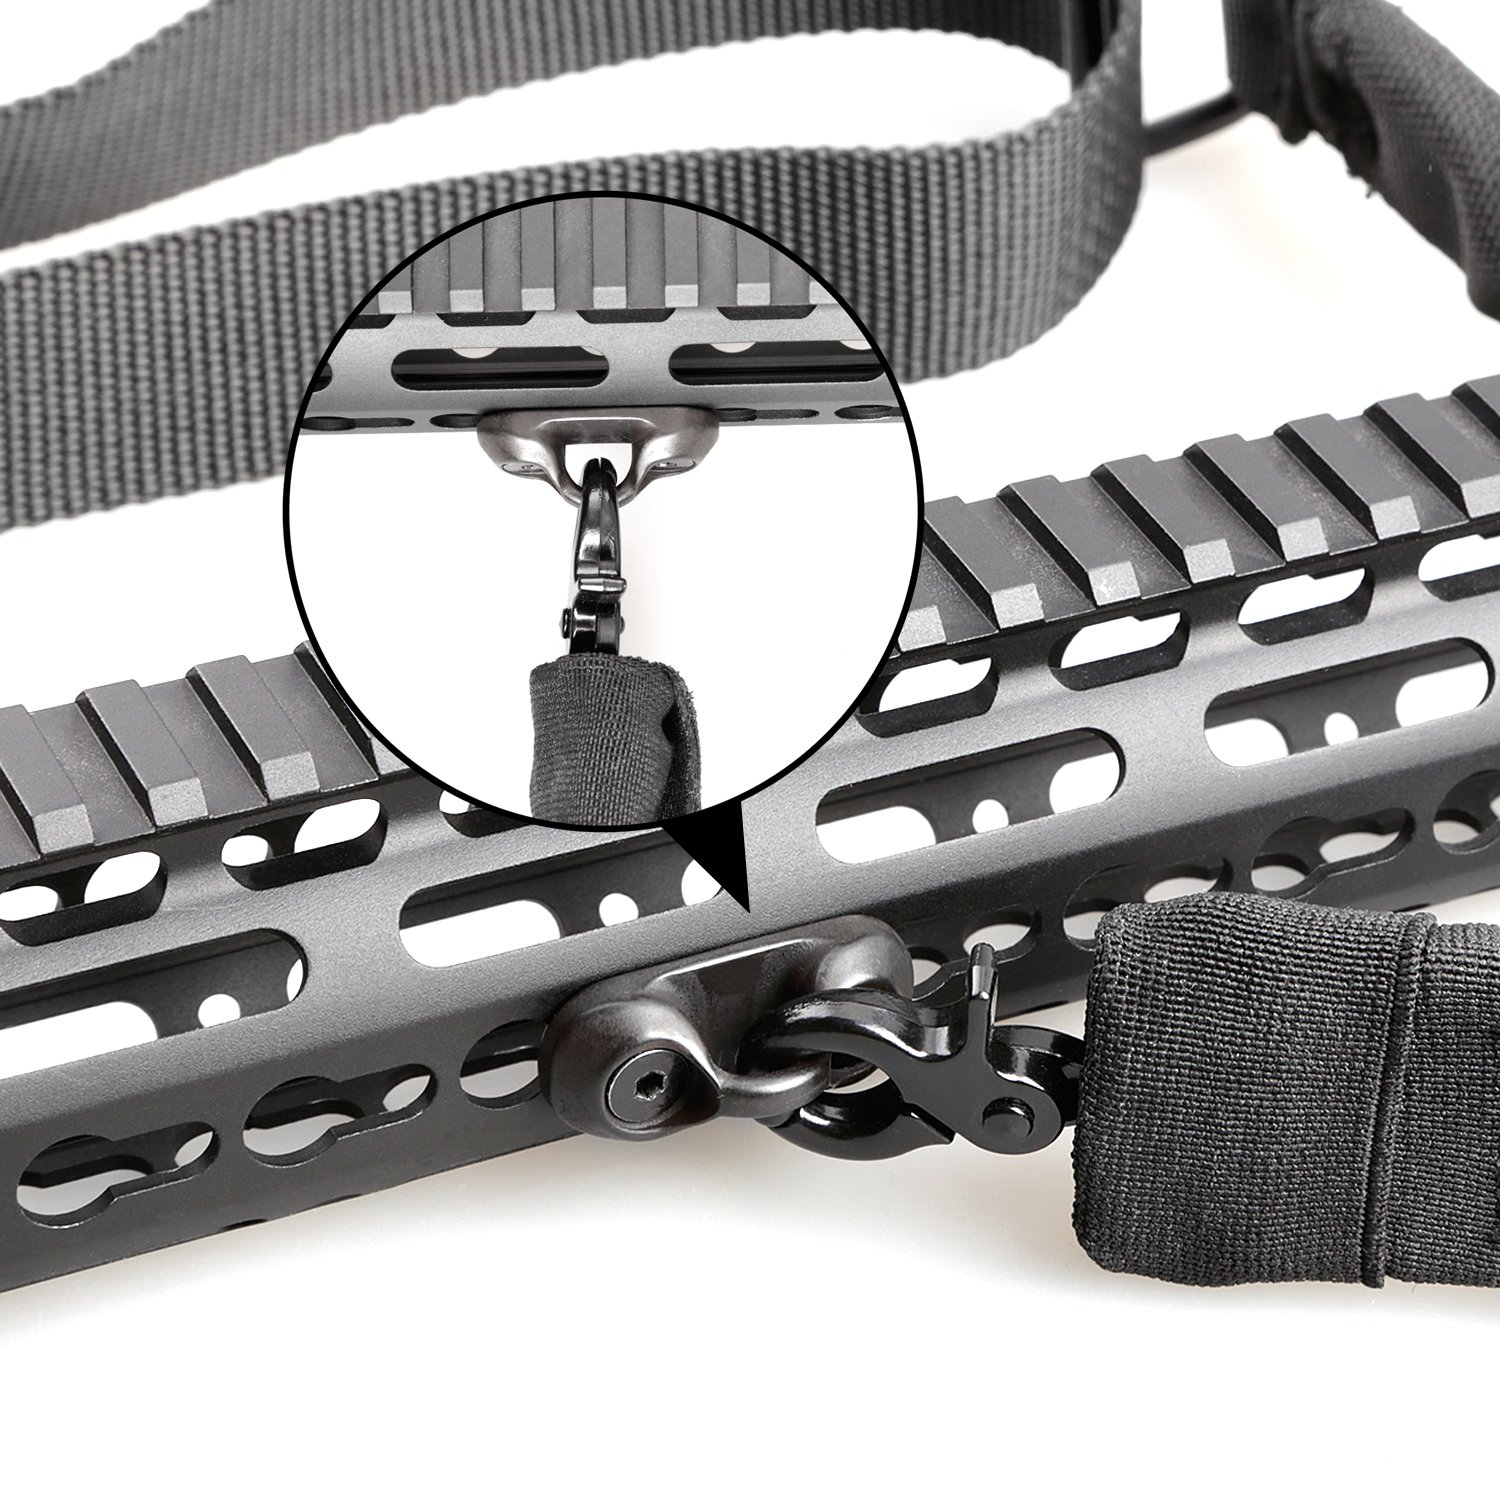 Tough Tactical Tools Keymod Sling Attachment Adapter with 2 Point Gun Sling for Hunting Shooting or other Outdoor Sports by Tough Tactical Tools (Image #7)